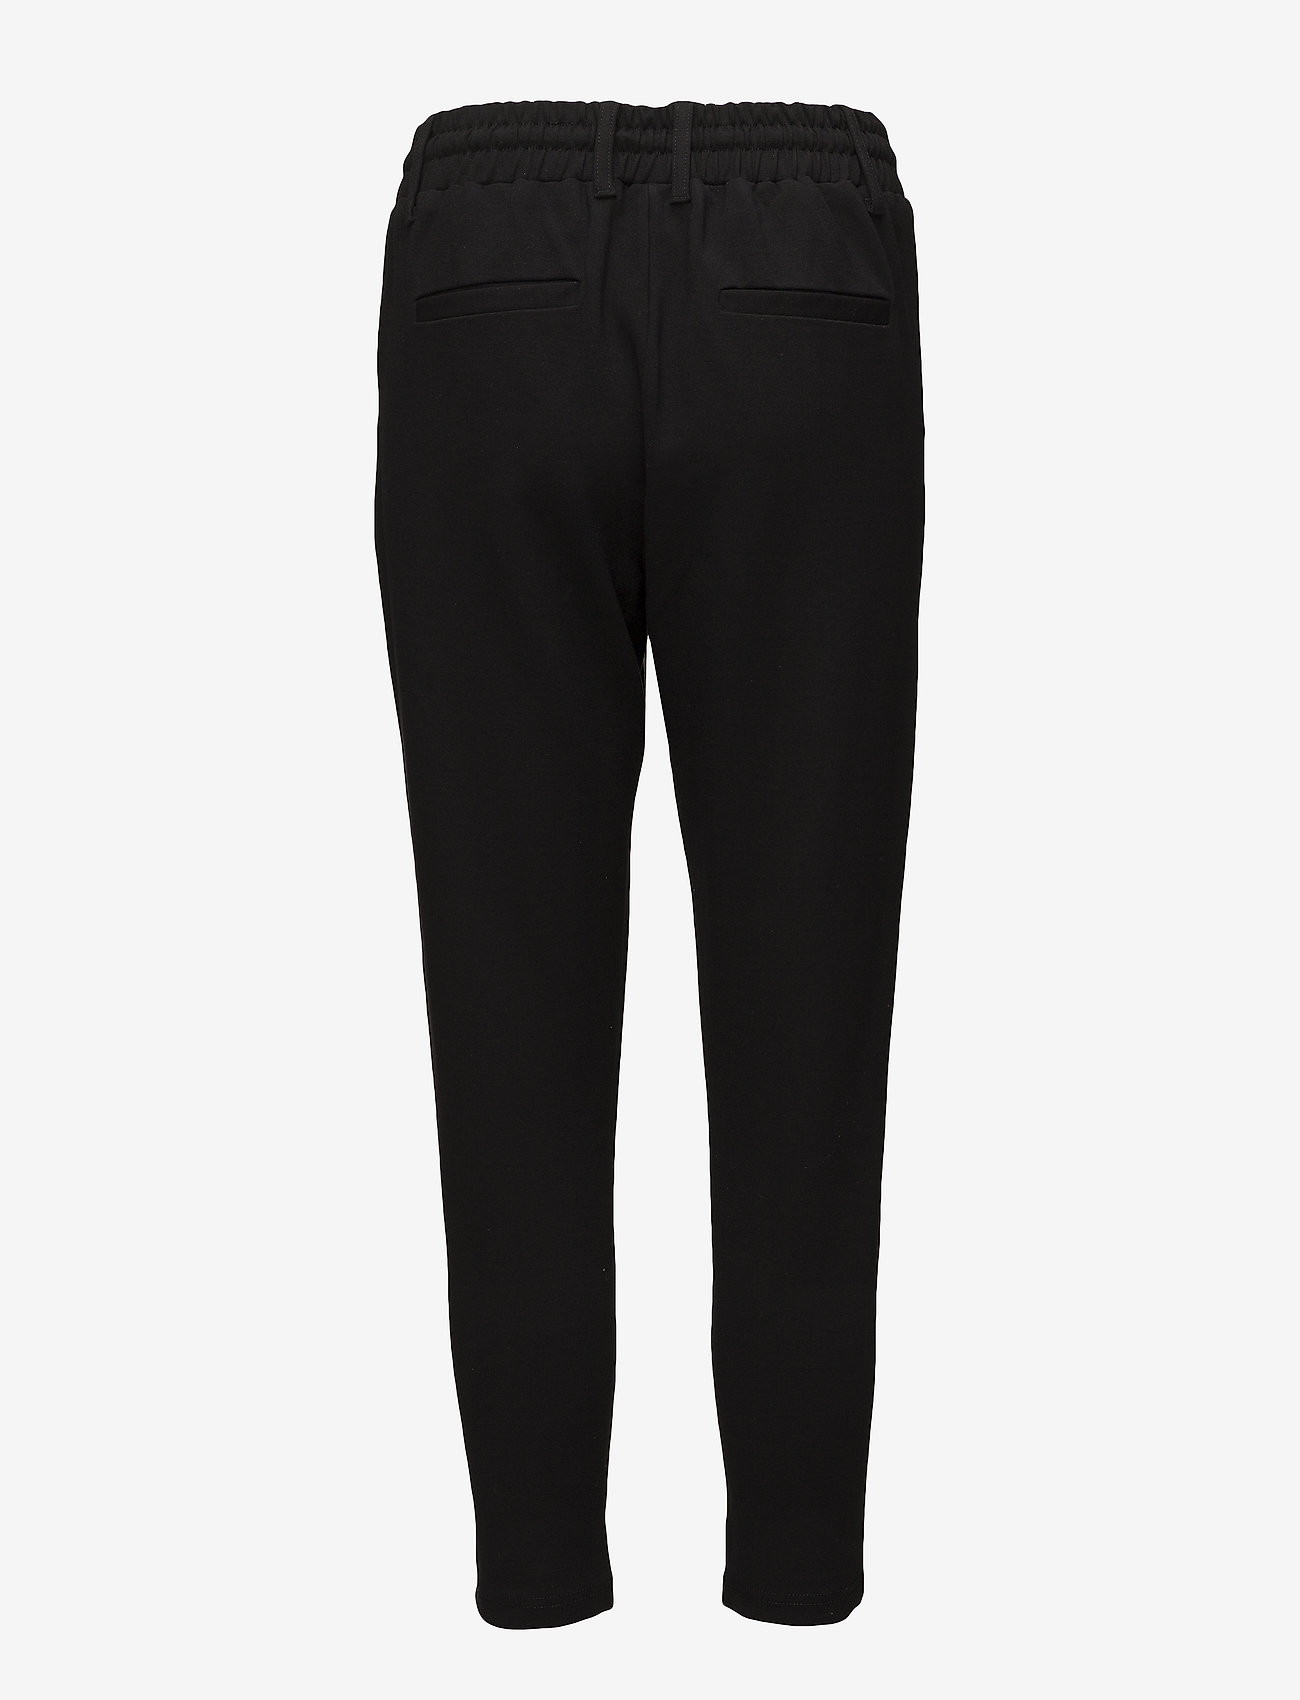 Soyaconcept - SC-ASALI - sweatpants - black - 1